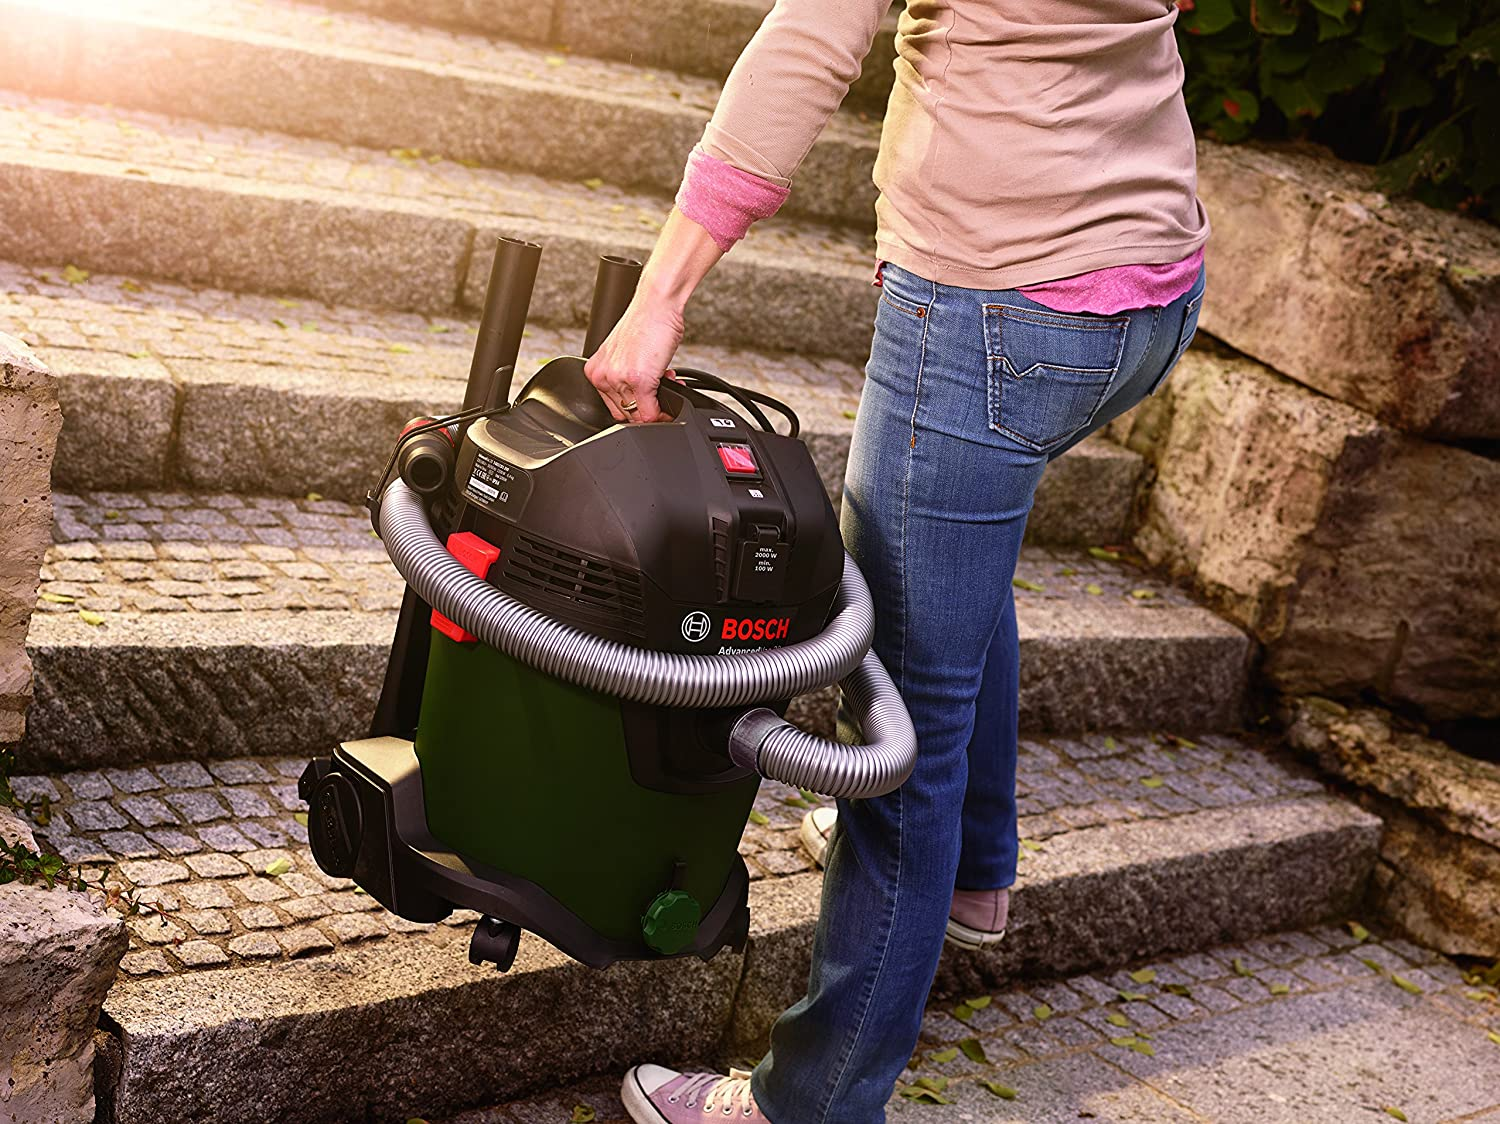 Bosch UniversalVac 15 Wet and Dry Vacuum Cleaner with Blowing ...